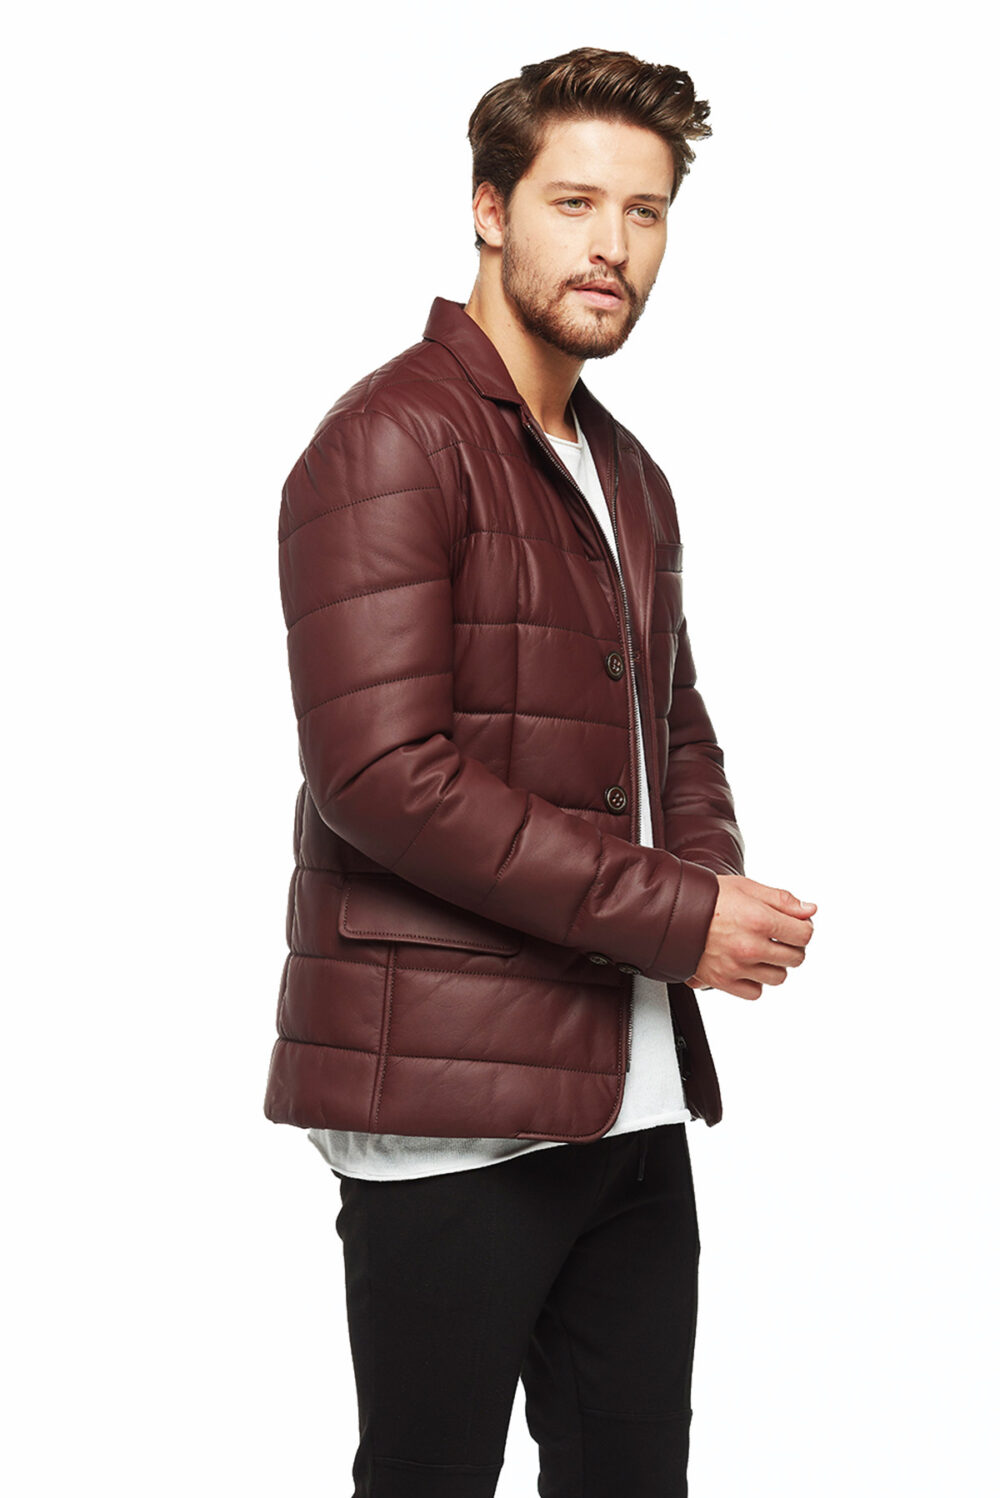 rowan row leather jacket mens